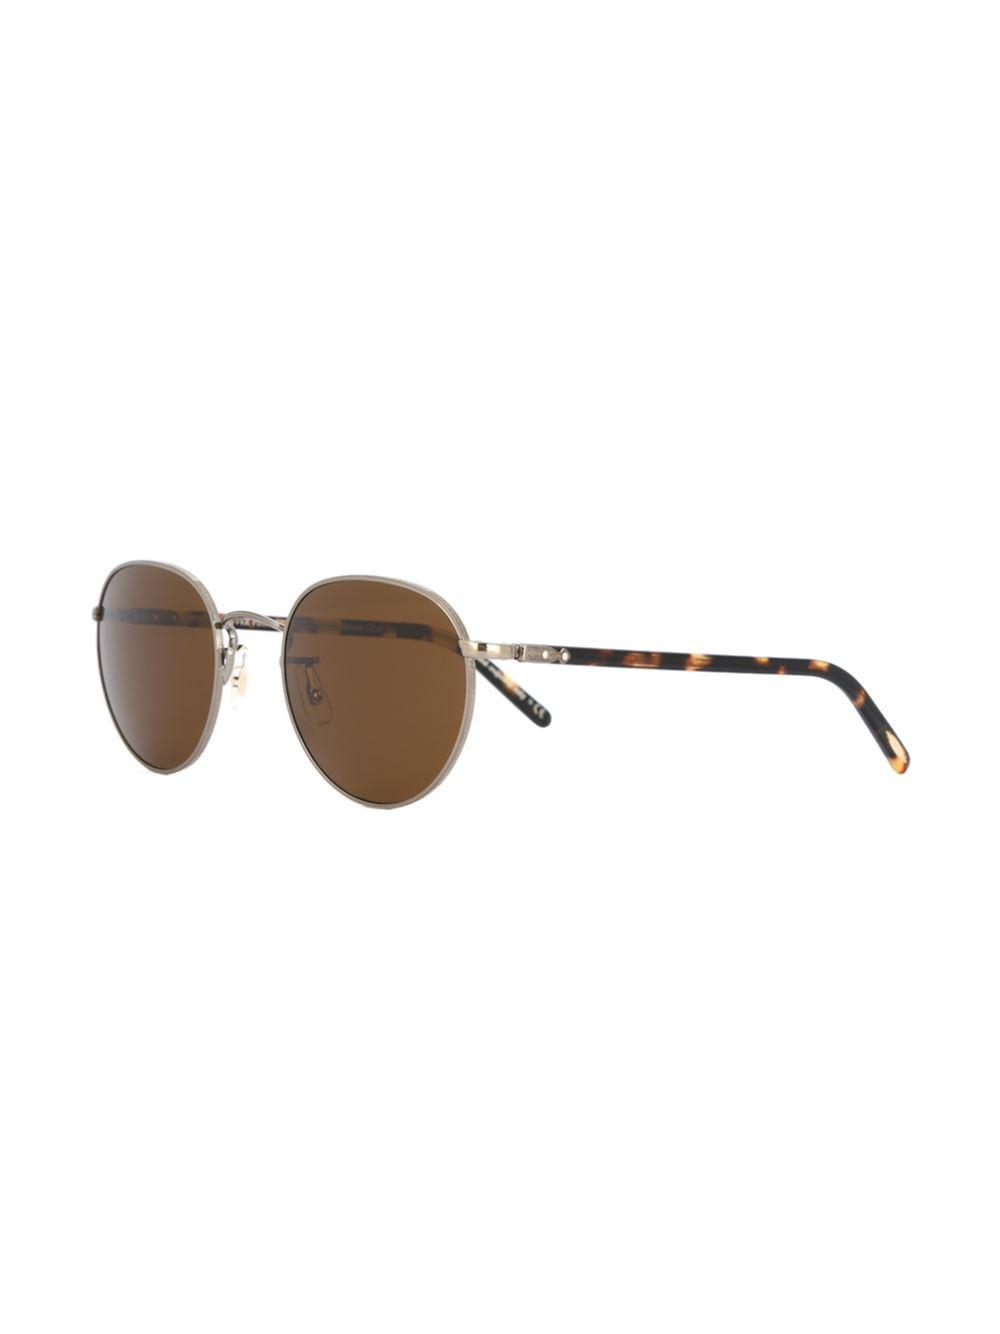 Oliver Peoples 'hassett' Sunglasses in Brown